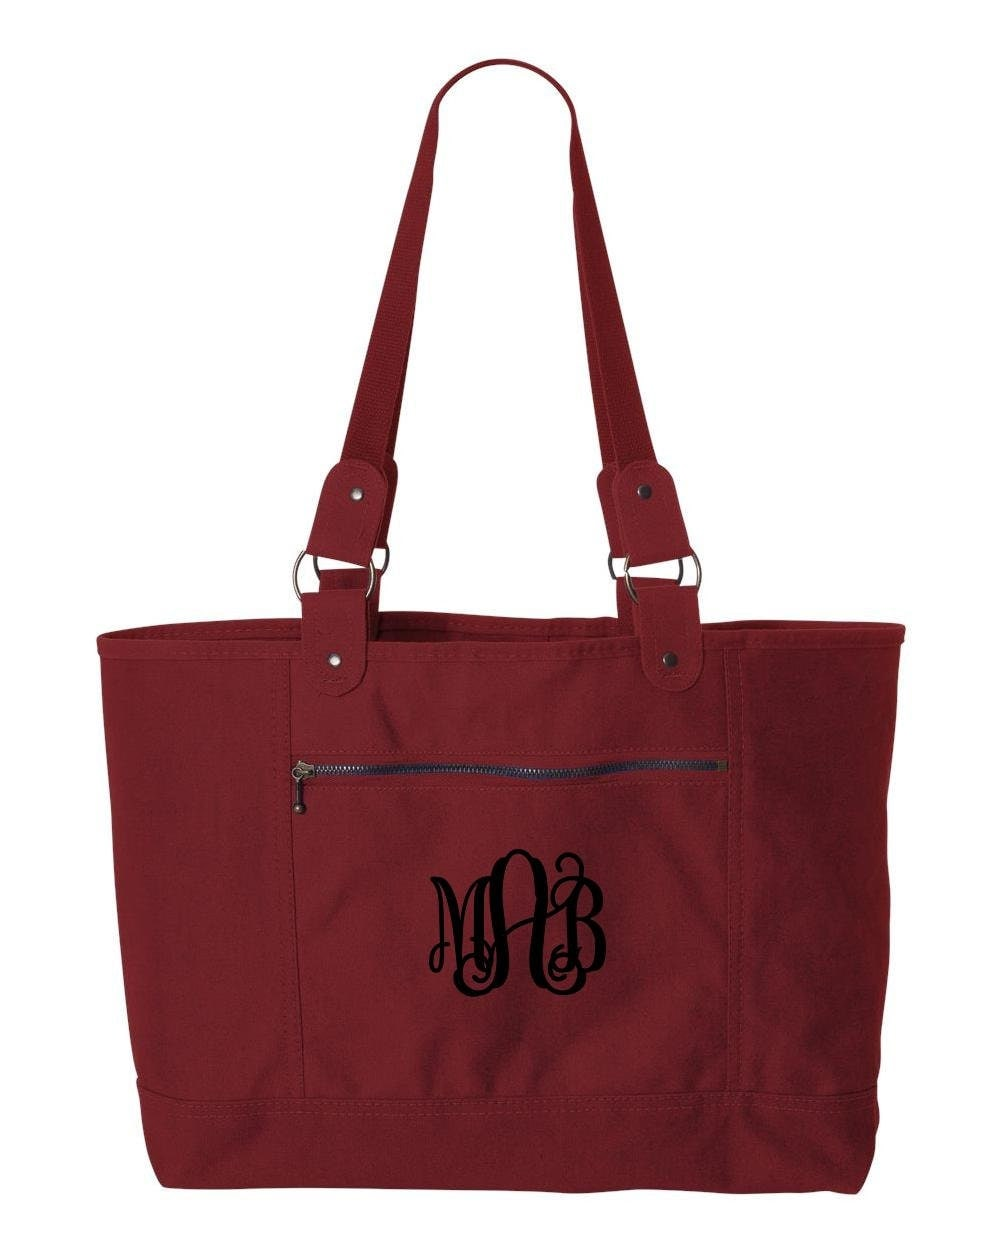 cranberry canvas tote bag monogrammed